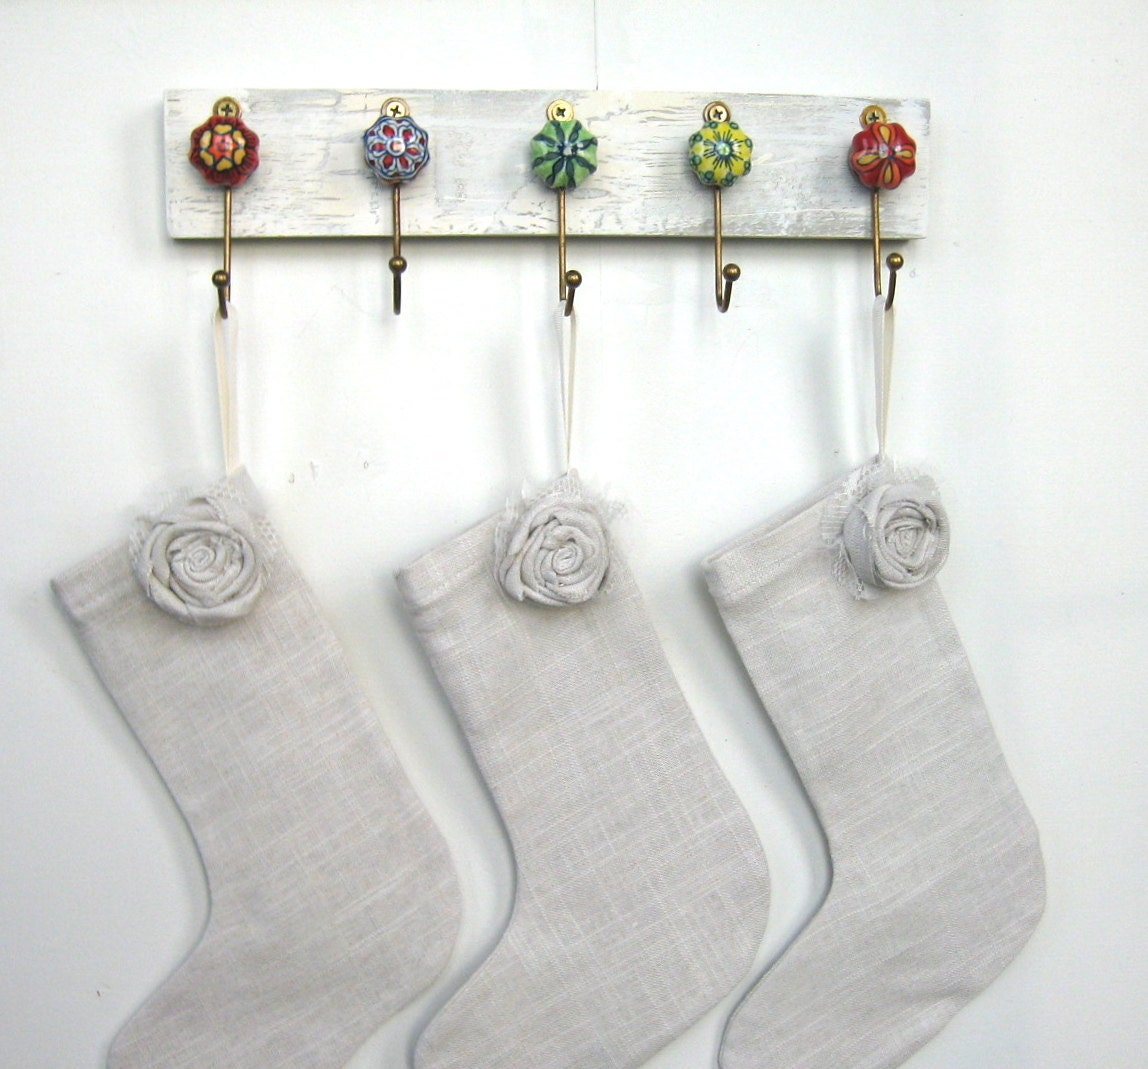 Wall Hooks Stocking Holder Key Ring Holder With Ceramic